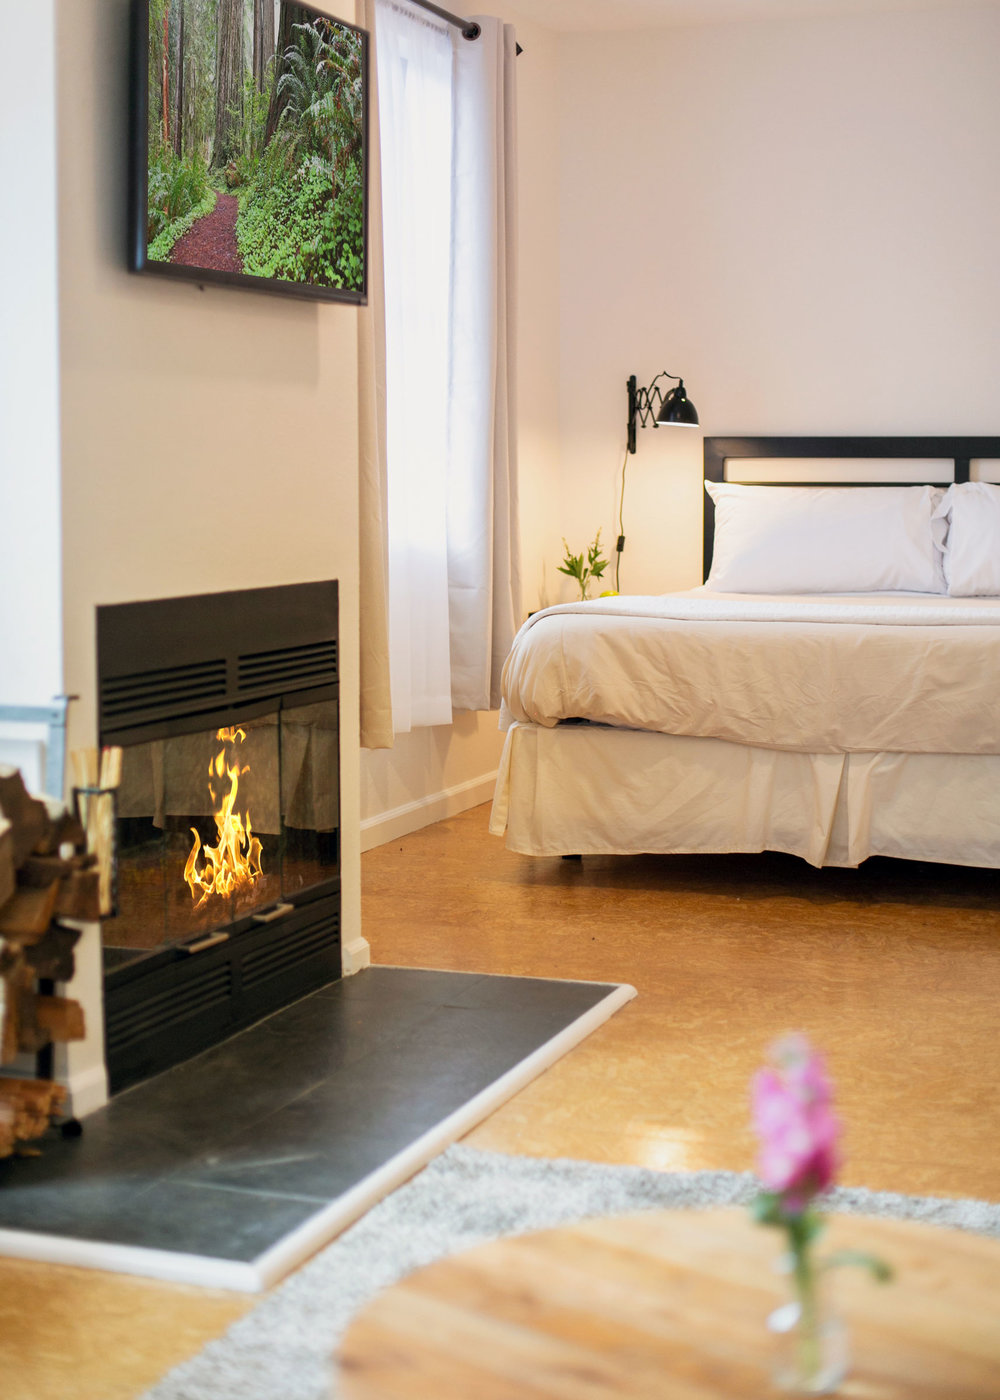 The bed and fireplace of room 102 at The Lodge at Glendeven Inn & Lodge outside of Mendocino